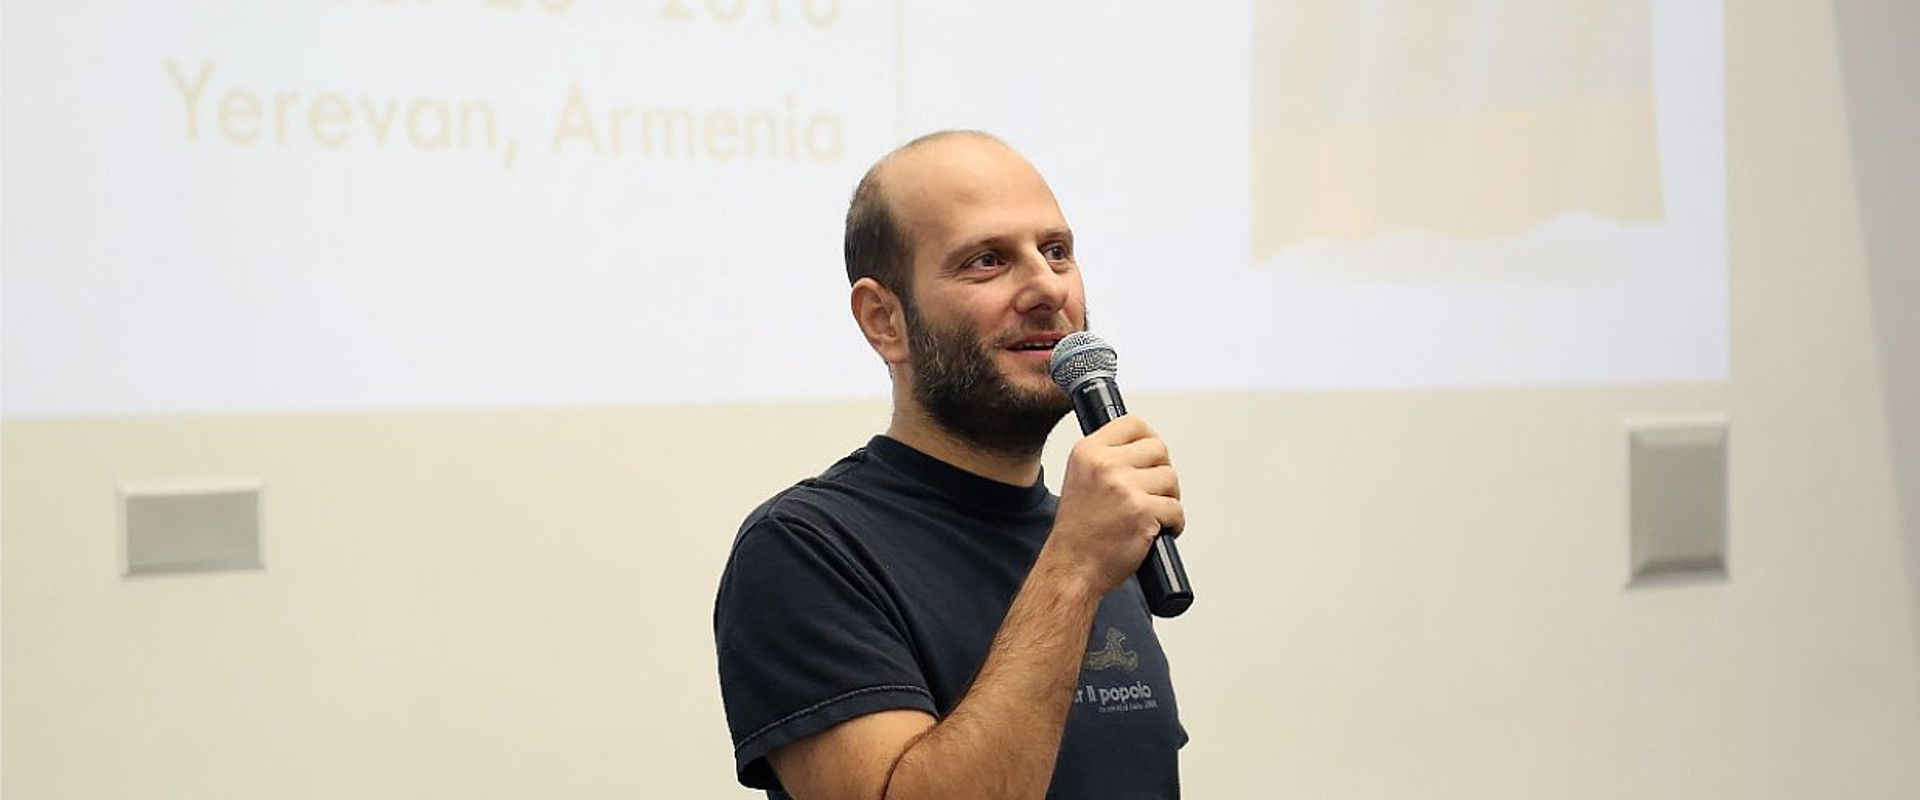 Stéphane Assadourian at TUMO Conference 2018, Yerevan, Armenia